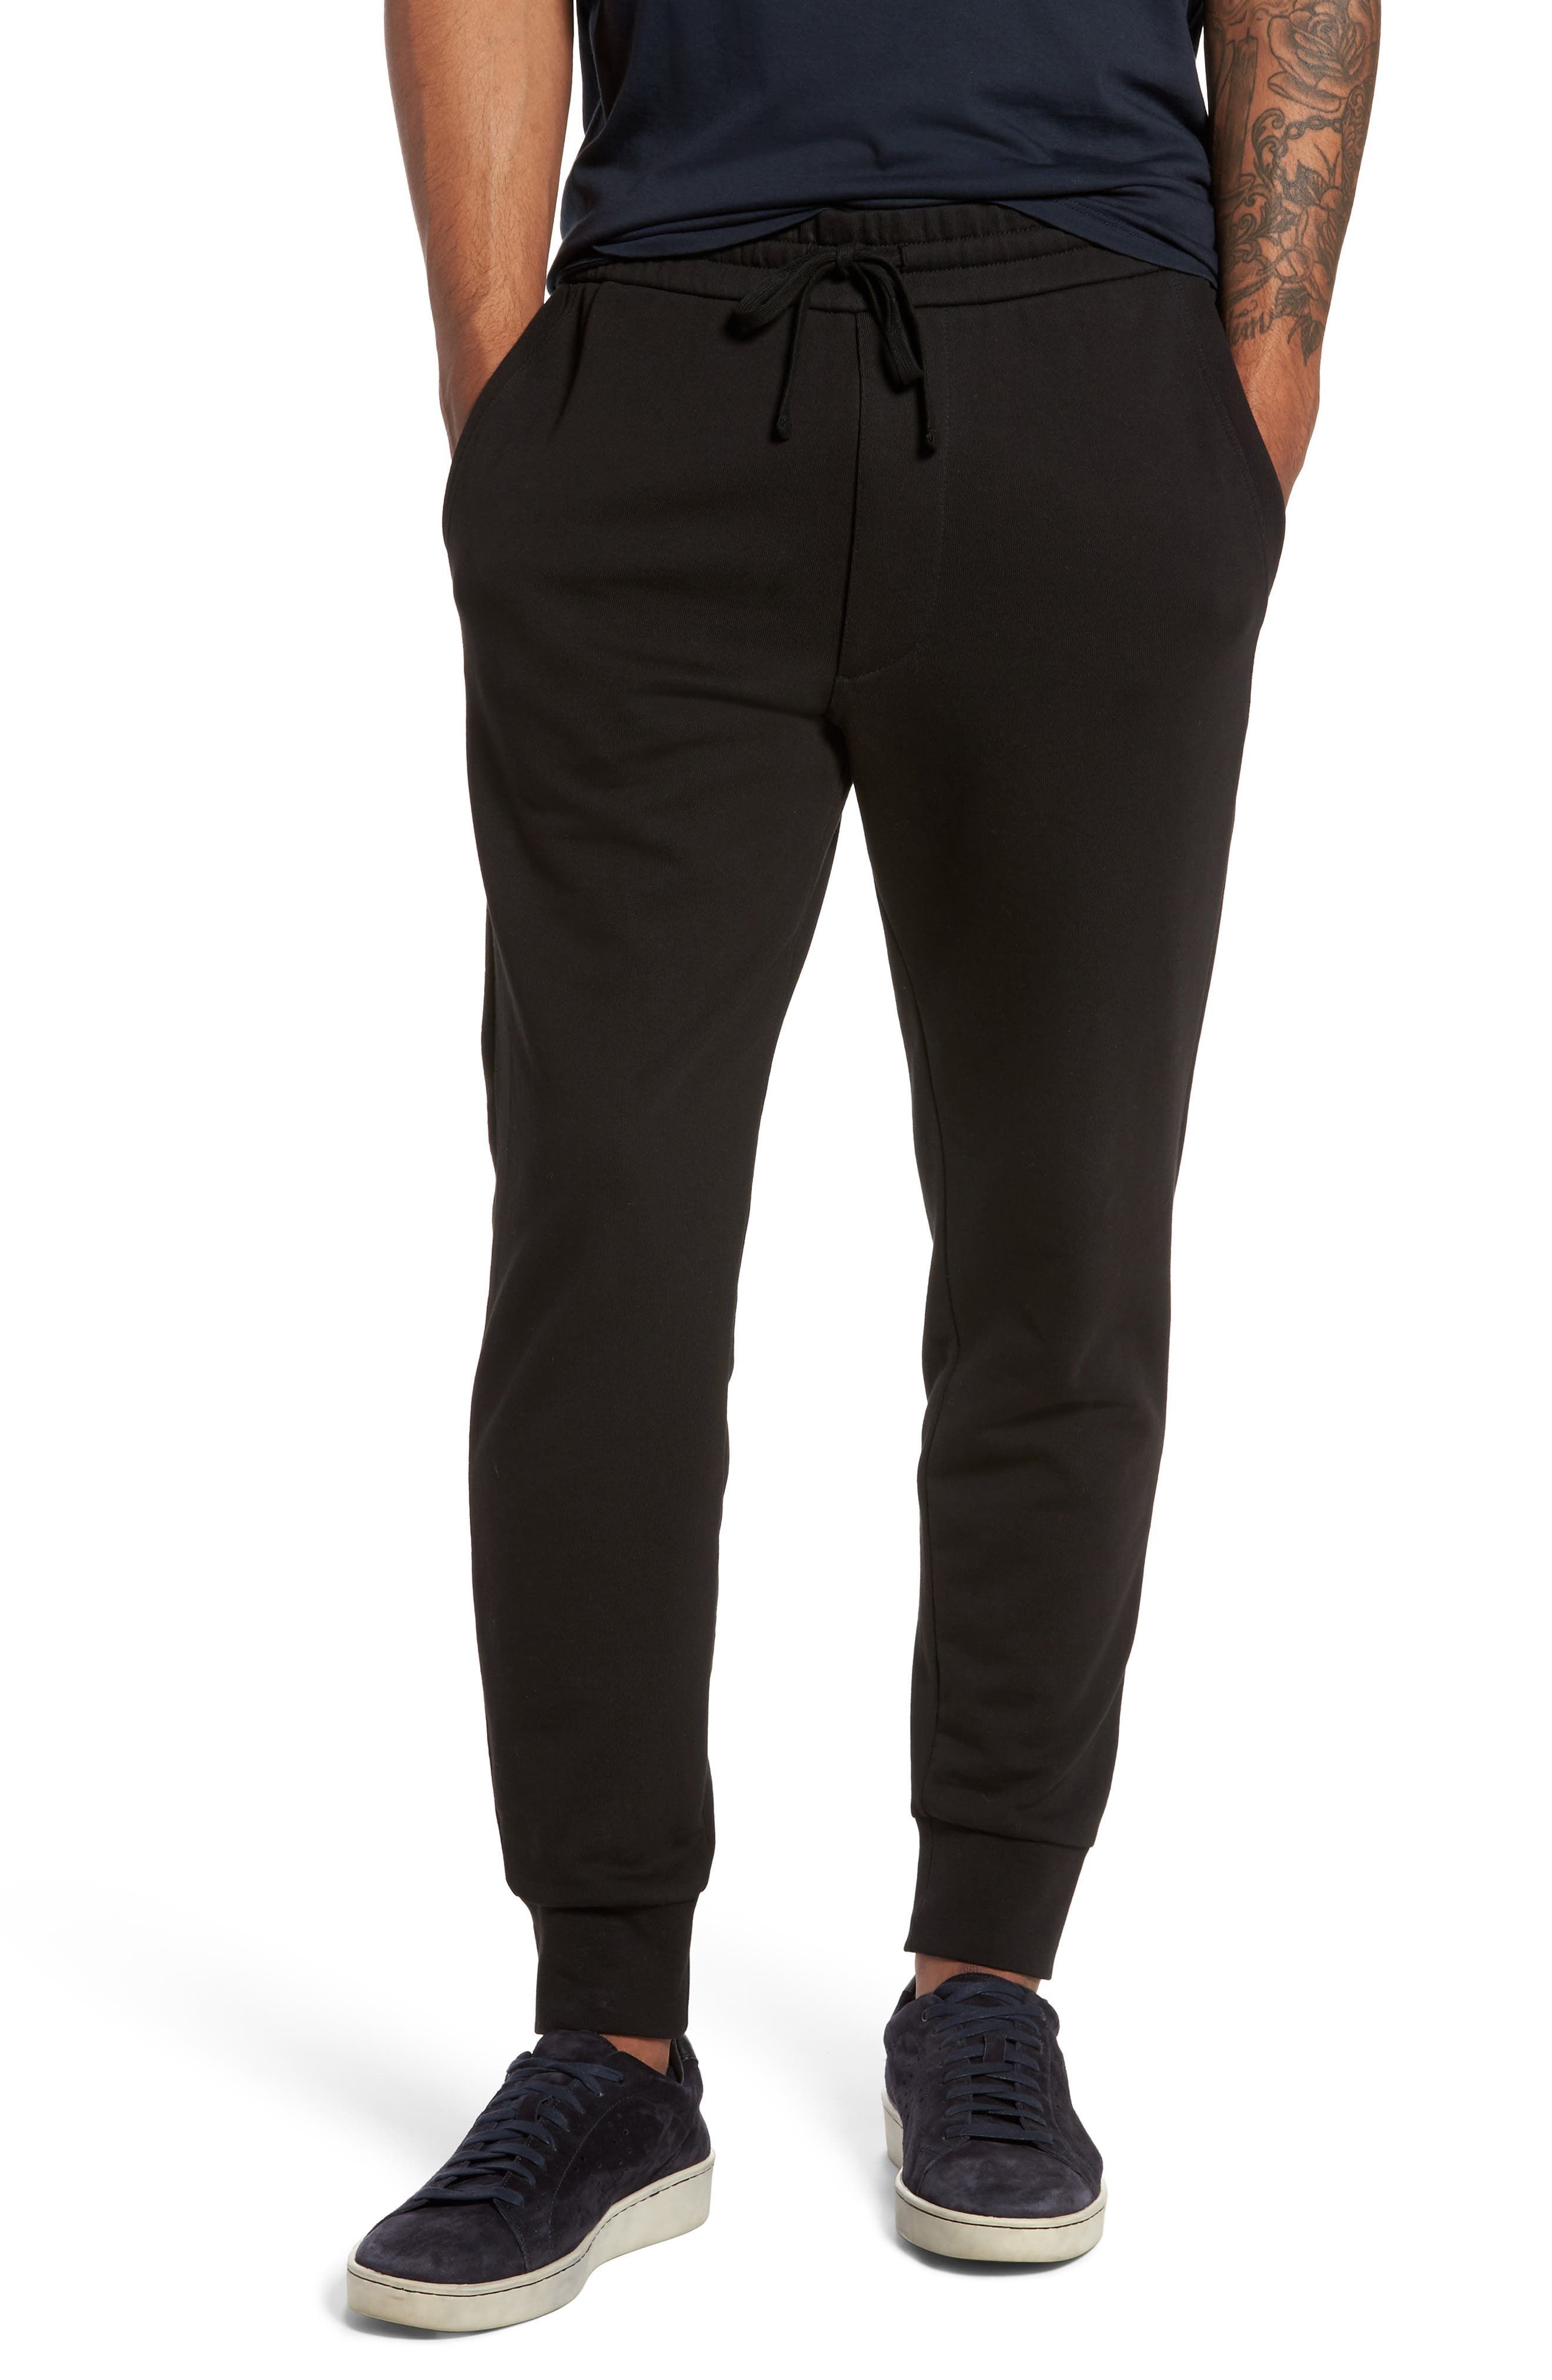 Cotton Sweatpants,                             Main thumbnail 1, color,                             Black